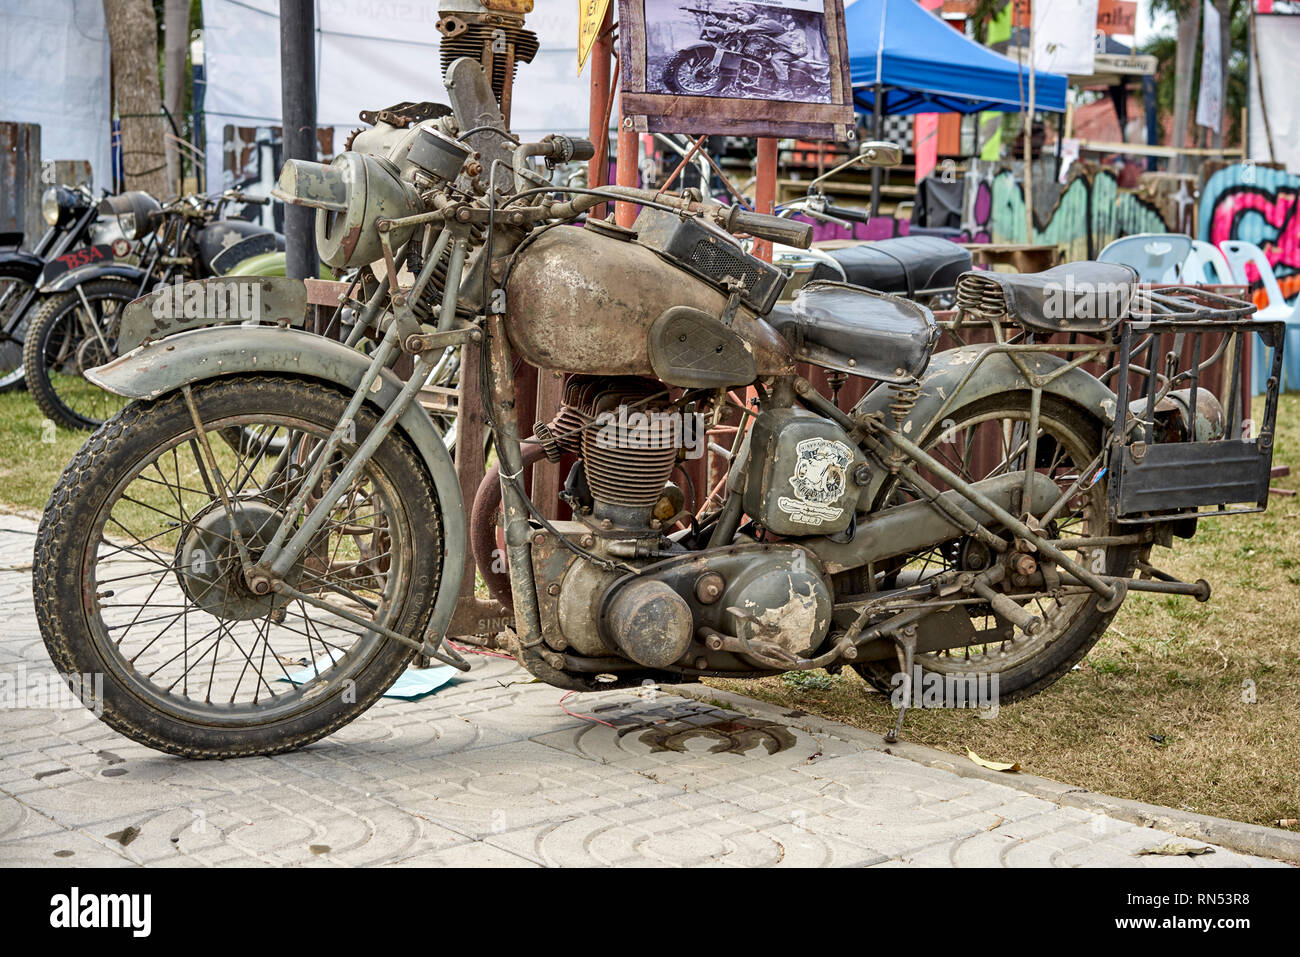 BSA M20 1940's military motorcycle used by both the British Army and USA Army in WW11 - Stock Image